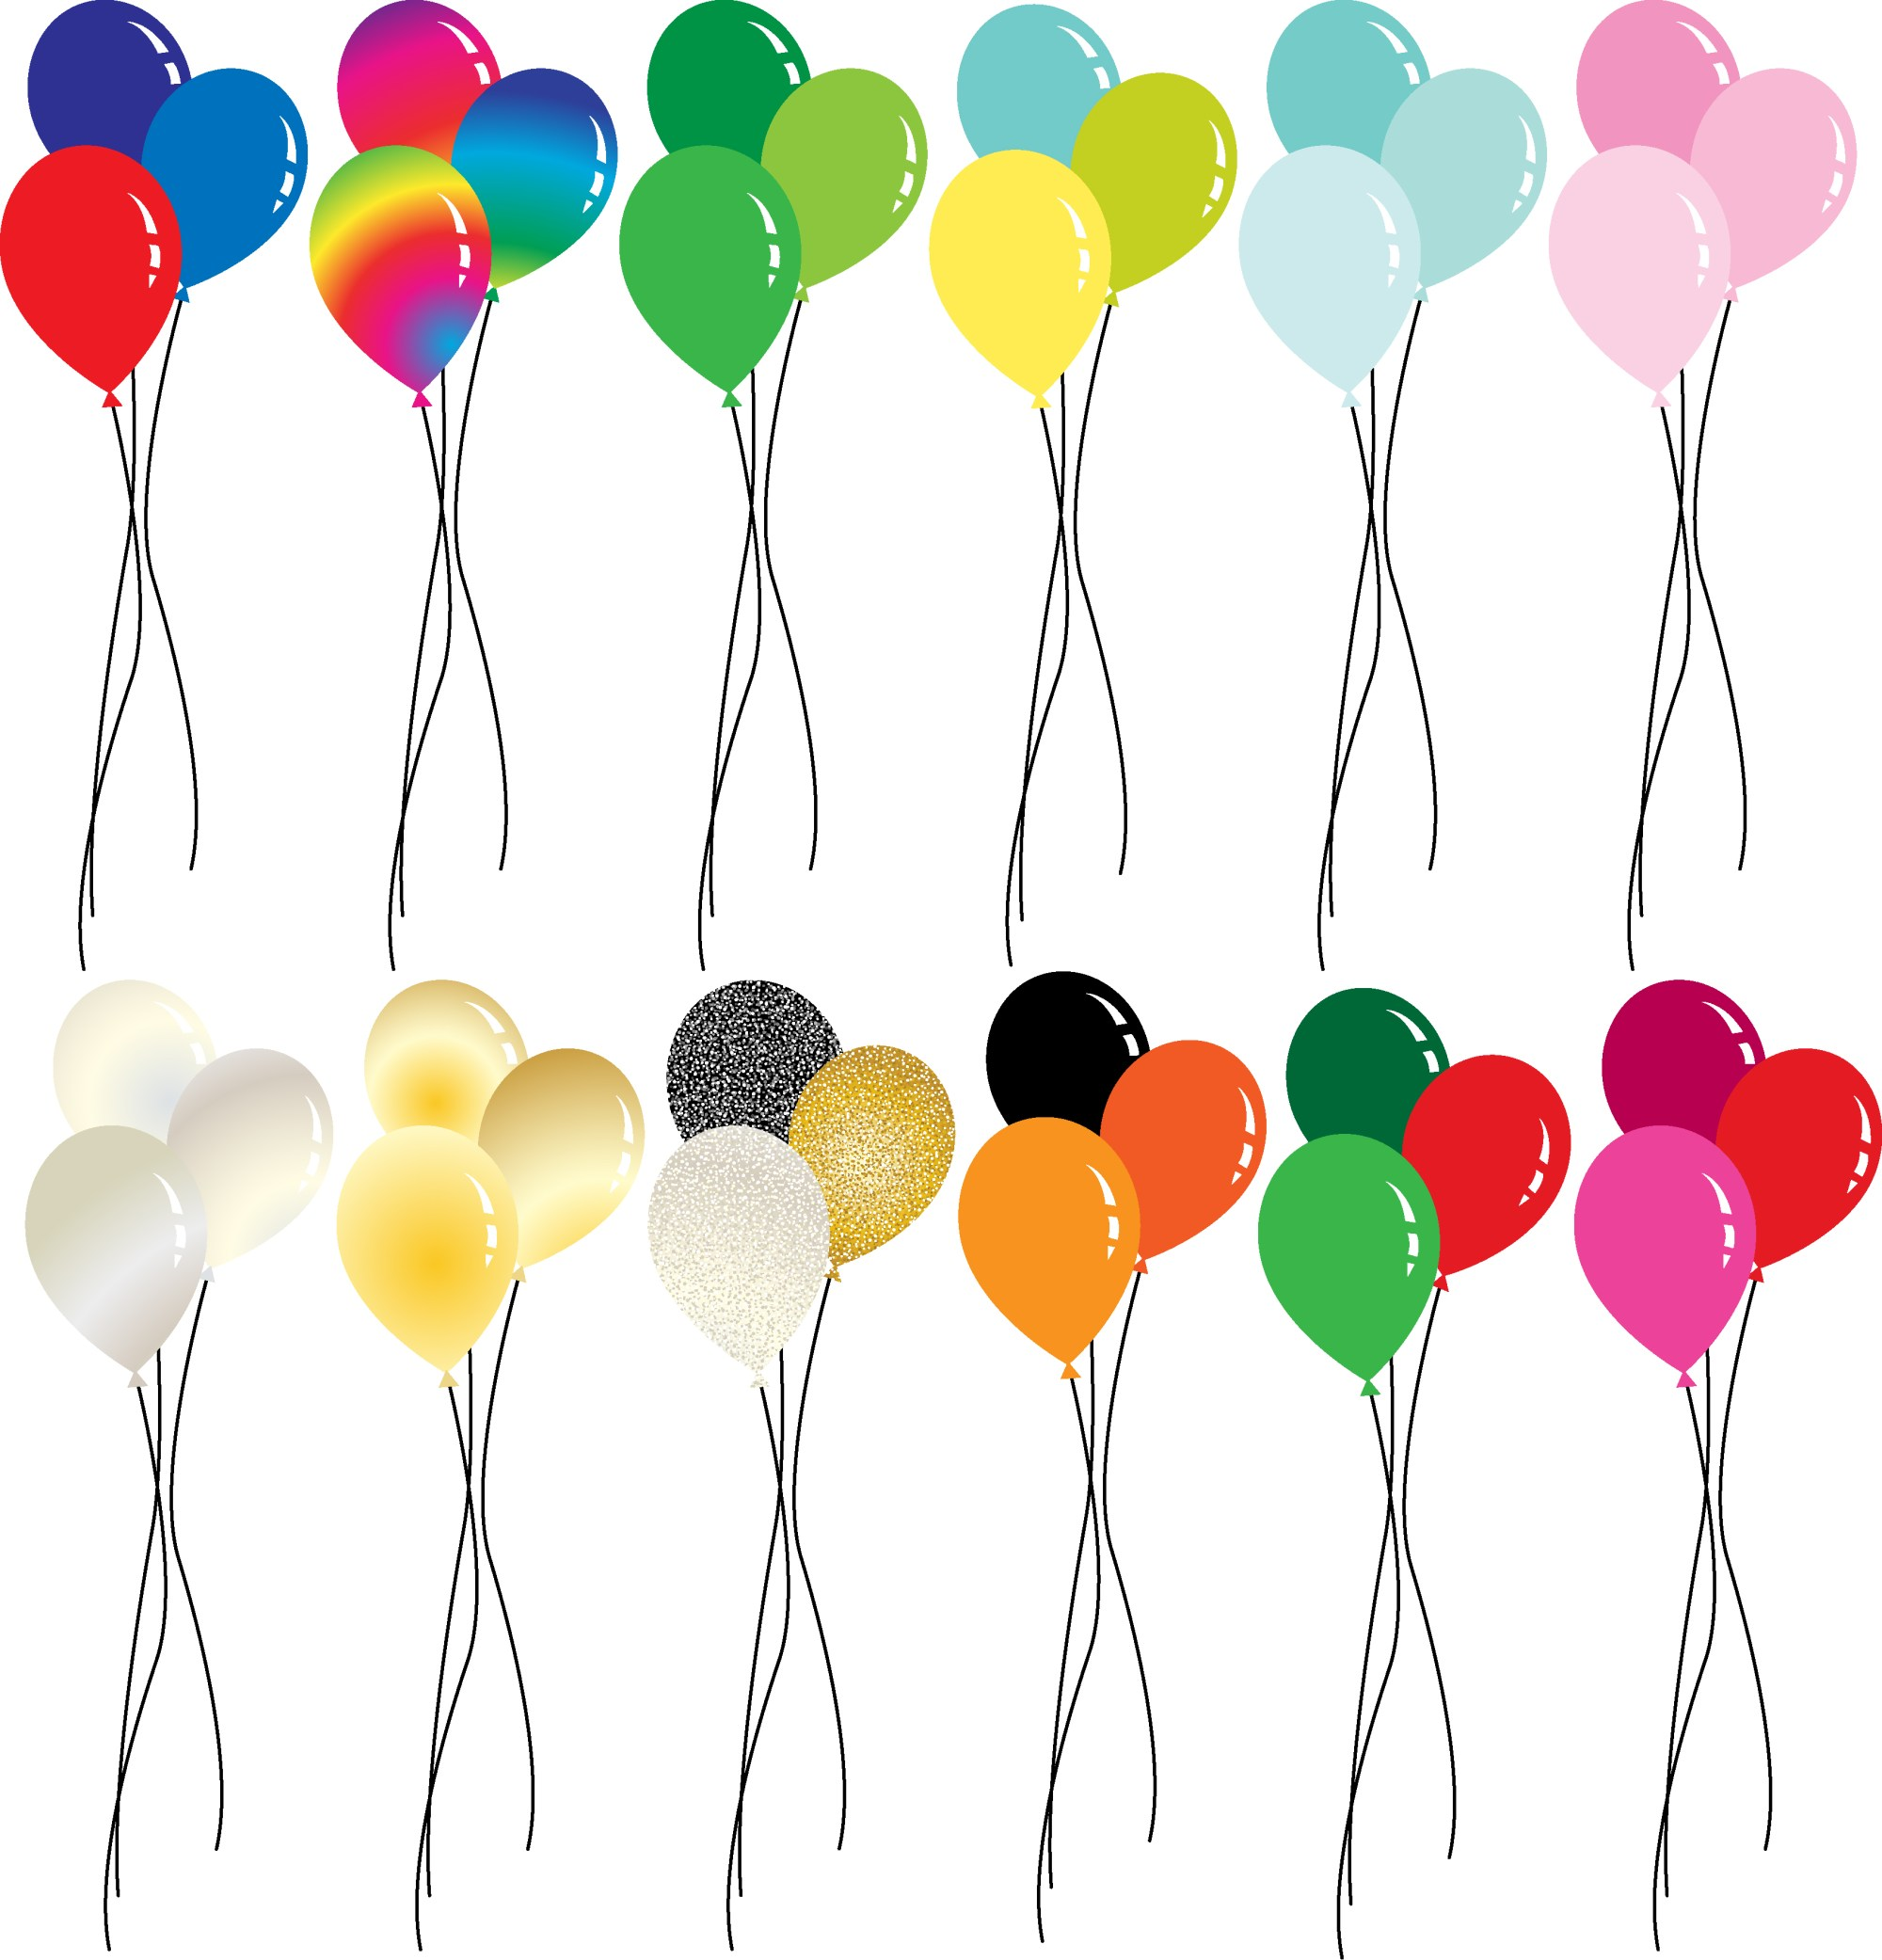 hight resolution of holiday balloon clipart download free vector art stock graphics images